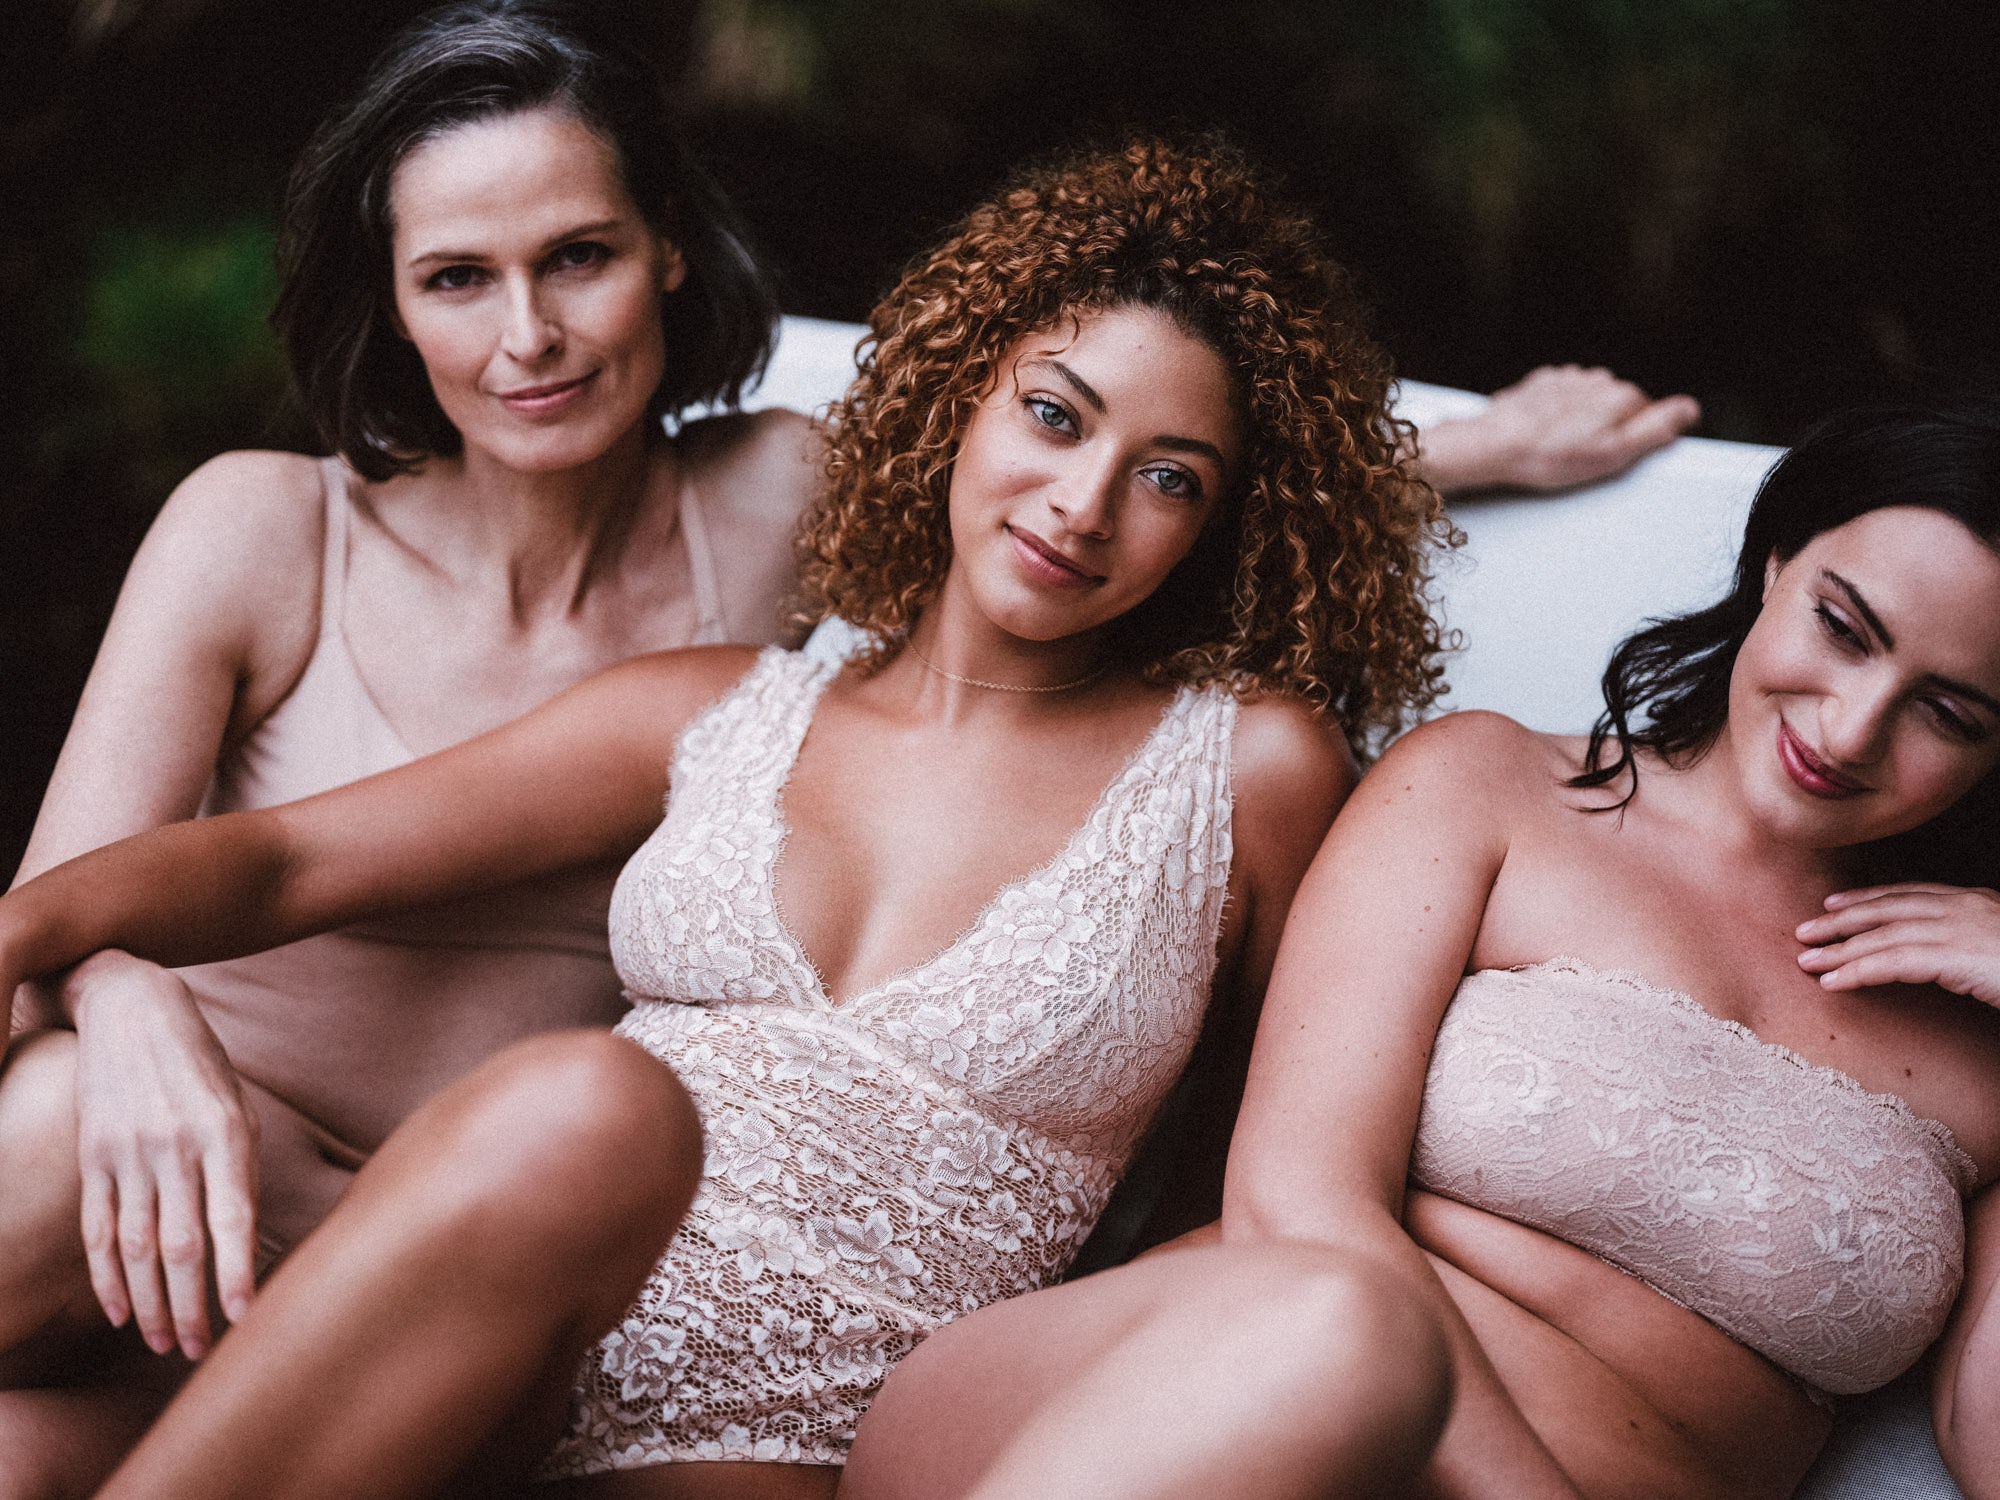 Cosabella is rebranding to evolve with the intimates market. Cosabella